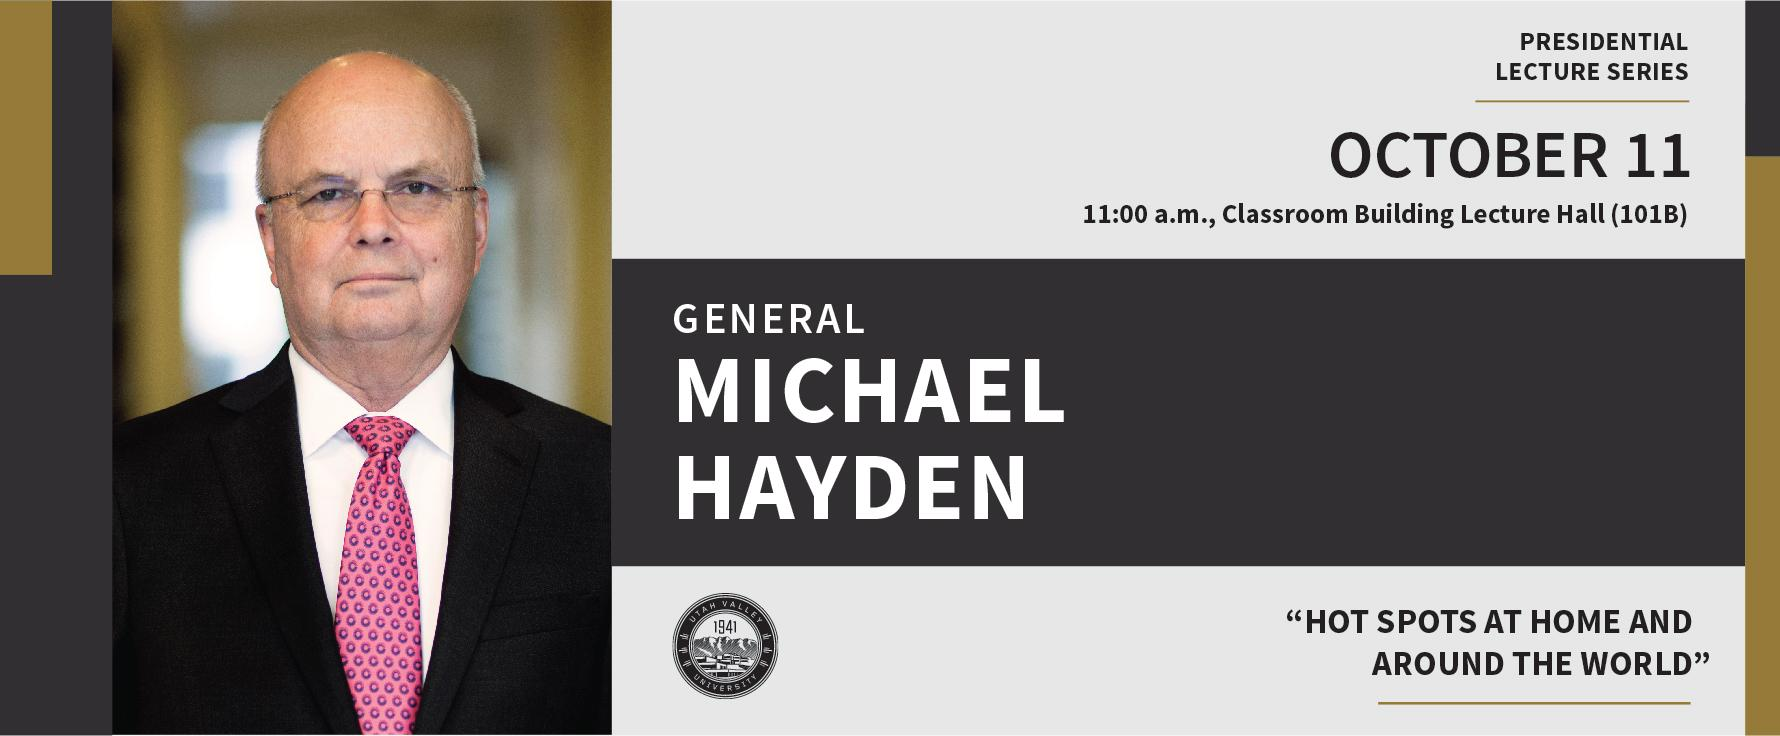 RSVP for the Presidential Lecture with General Michael Hayden